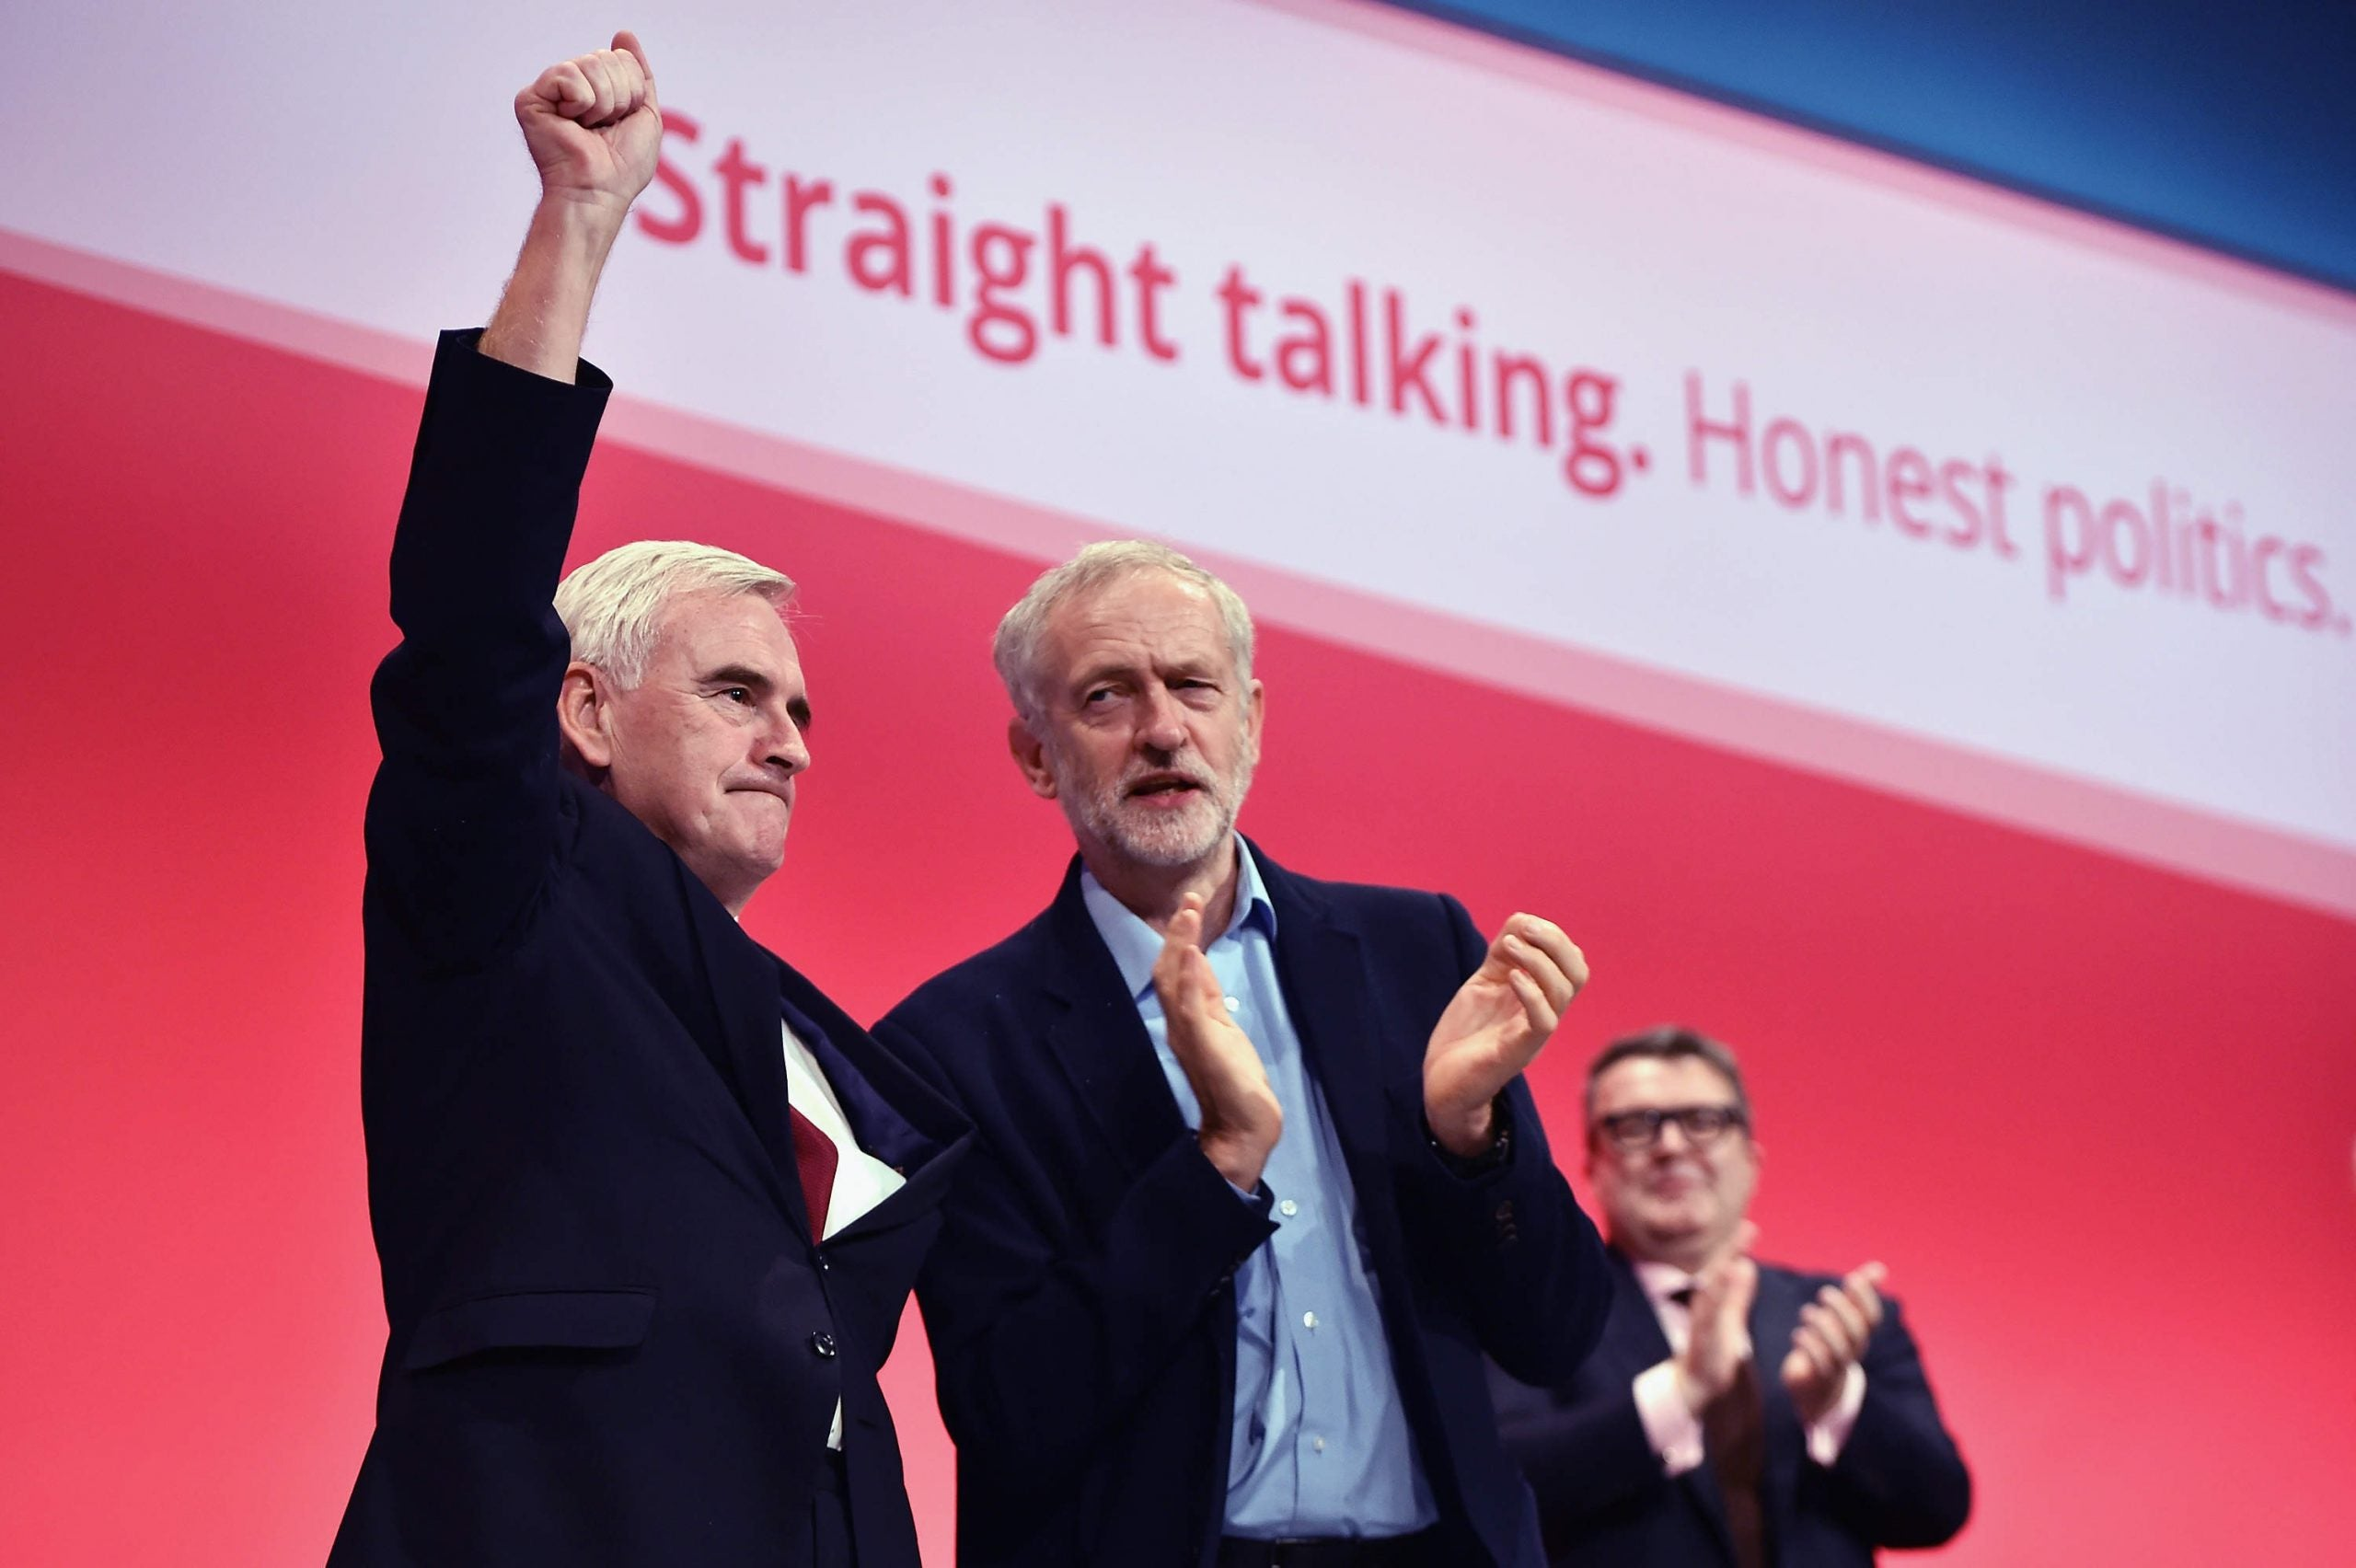 This year, Labour was united and energised – we are poised to transform the country